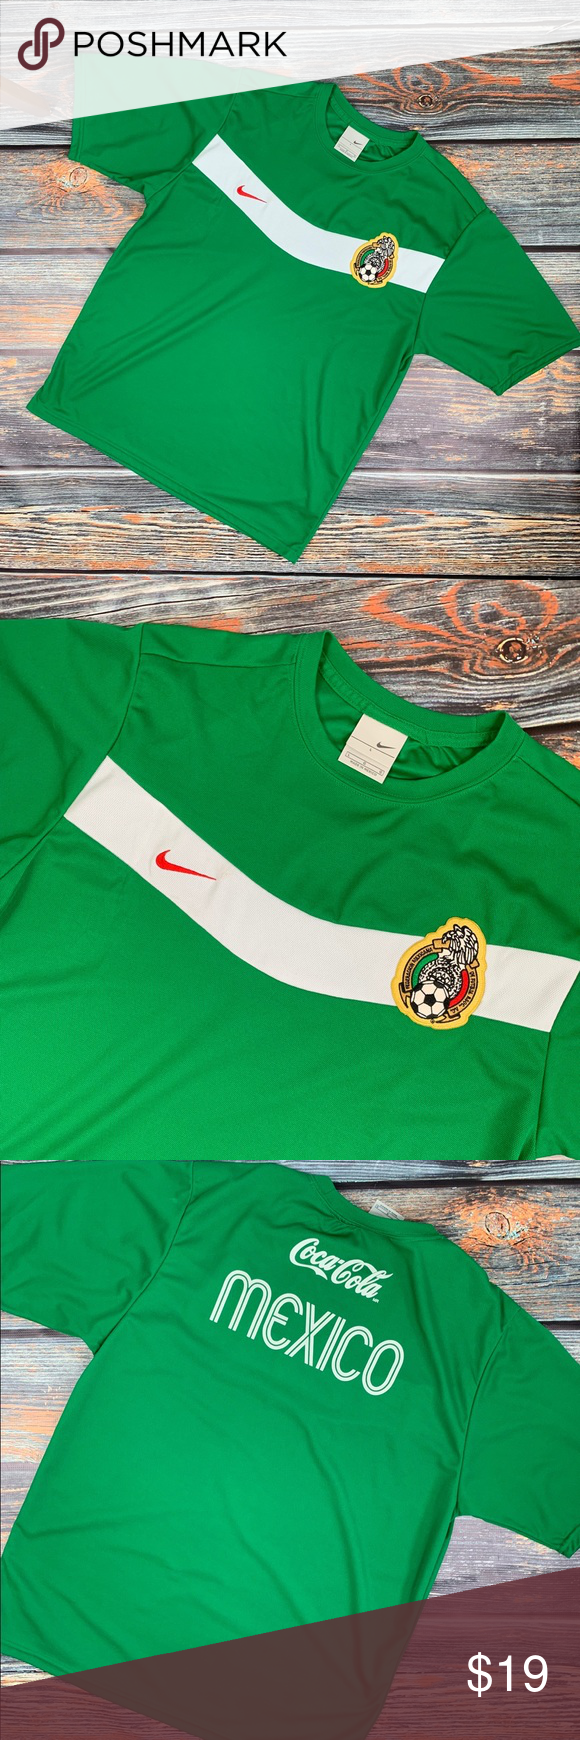 6a2dc003cce Vintage Nike Mexico National WorldCup SoccerJersey Vintage Nike Mexico  National Team World Cup Futbol Soccer Jersey. Size:LARGE Nike Shirts Tees -  Short ...